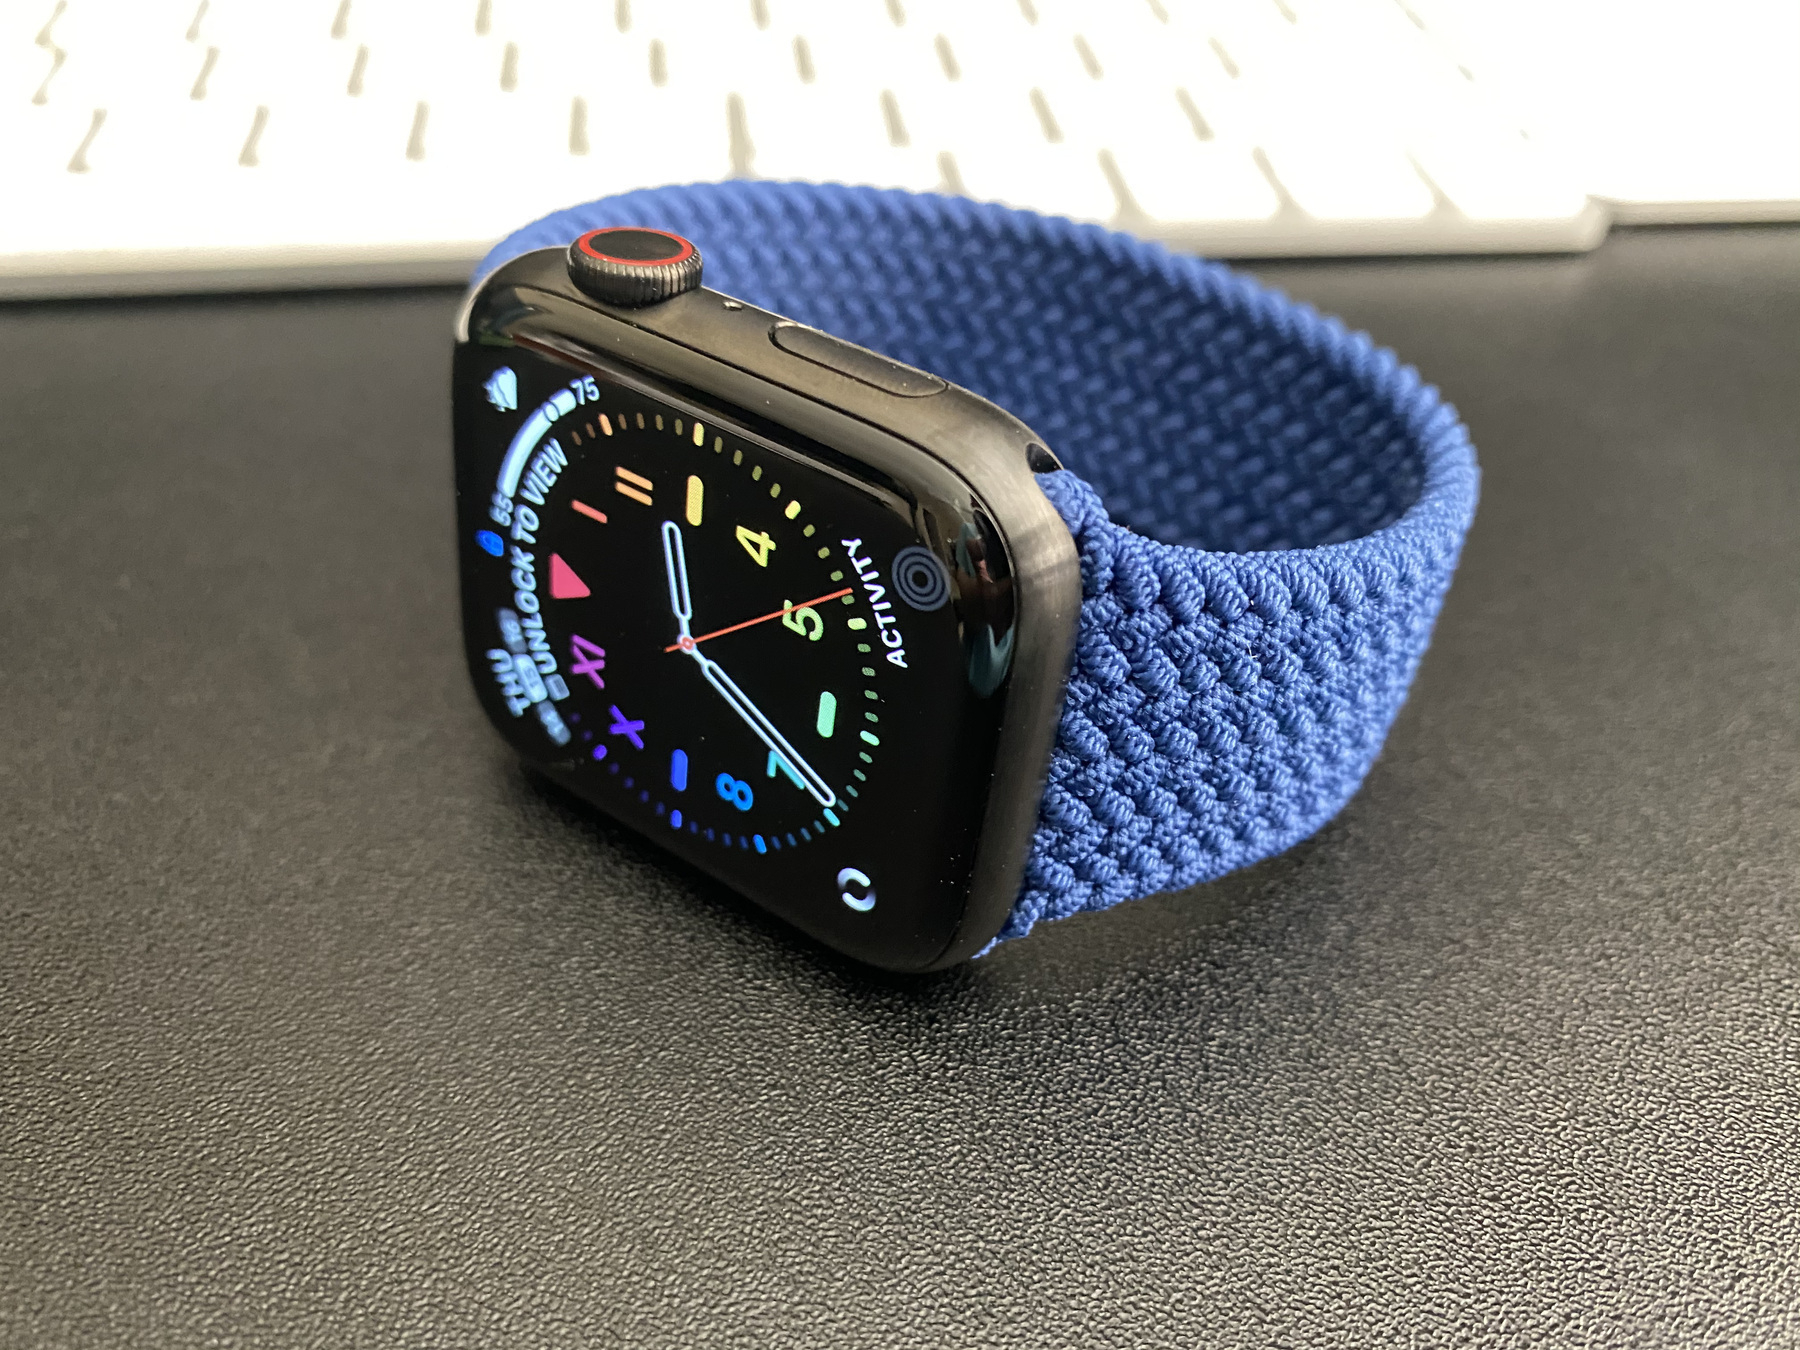 Apple Watch Series 6 in Space Black